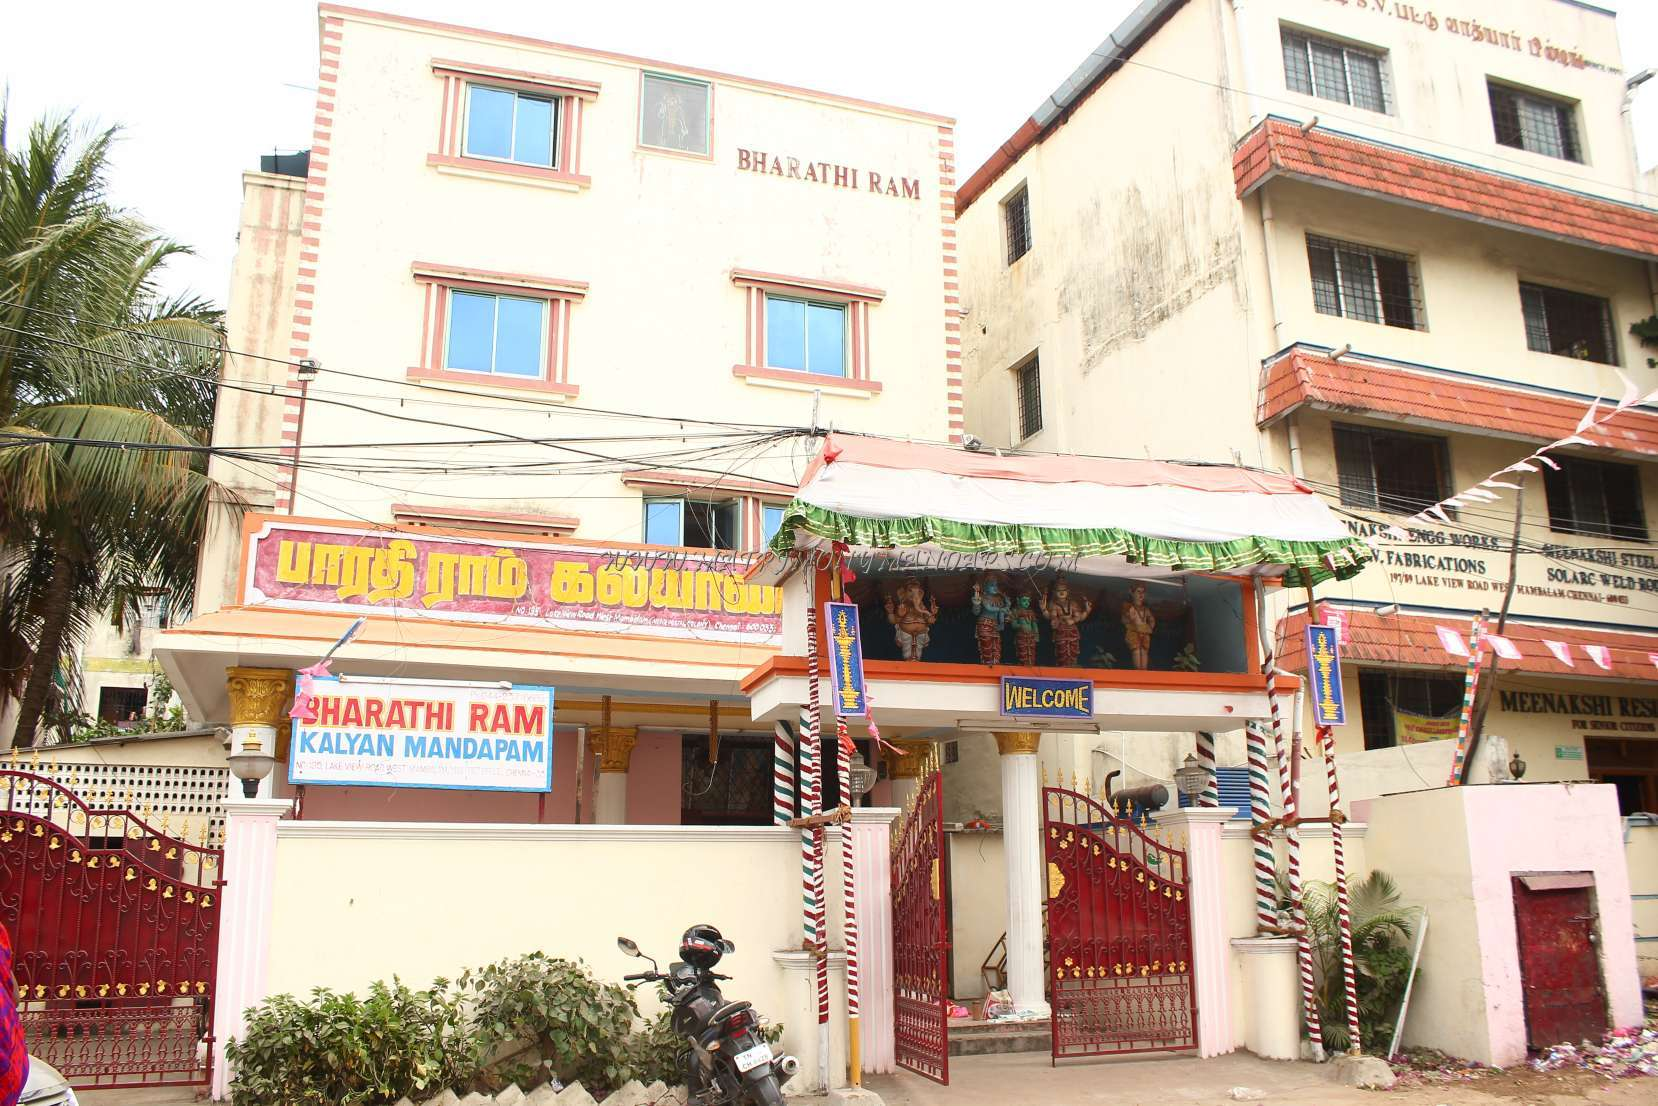 Find the availability of the Bharathi Ram Kalyana Mandapam (A/C) in West Mambalam, Chennai and avail special offers